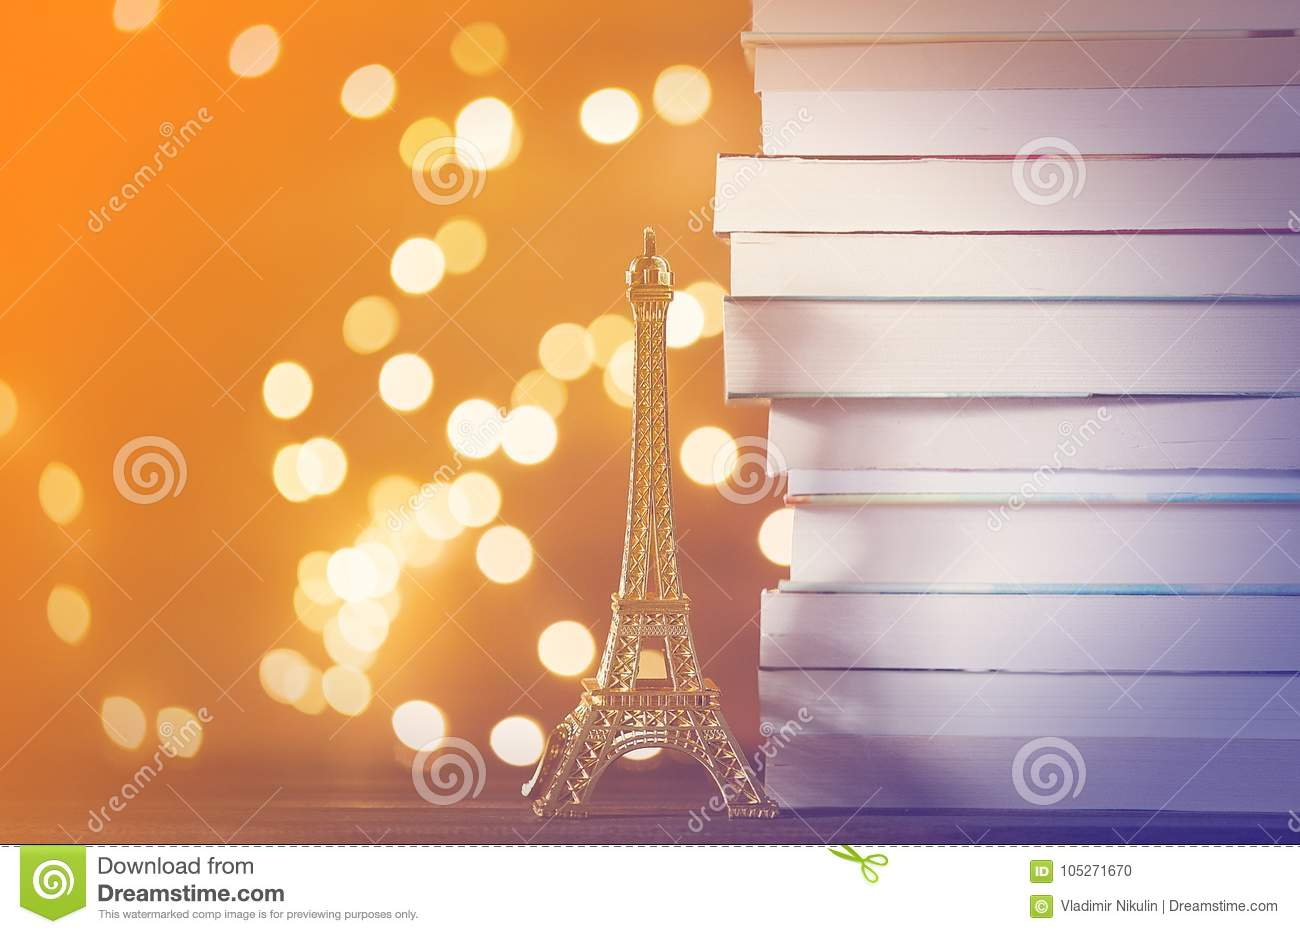 Eiffel tower gift and pile of books with Fairy lights